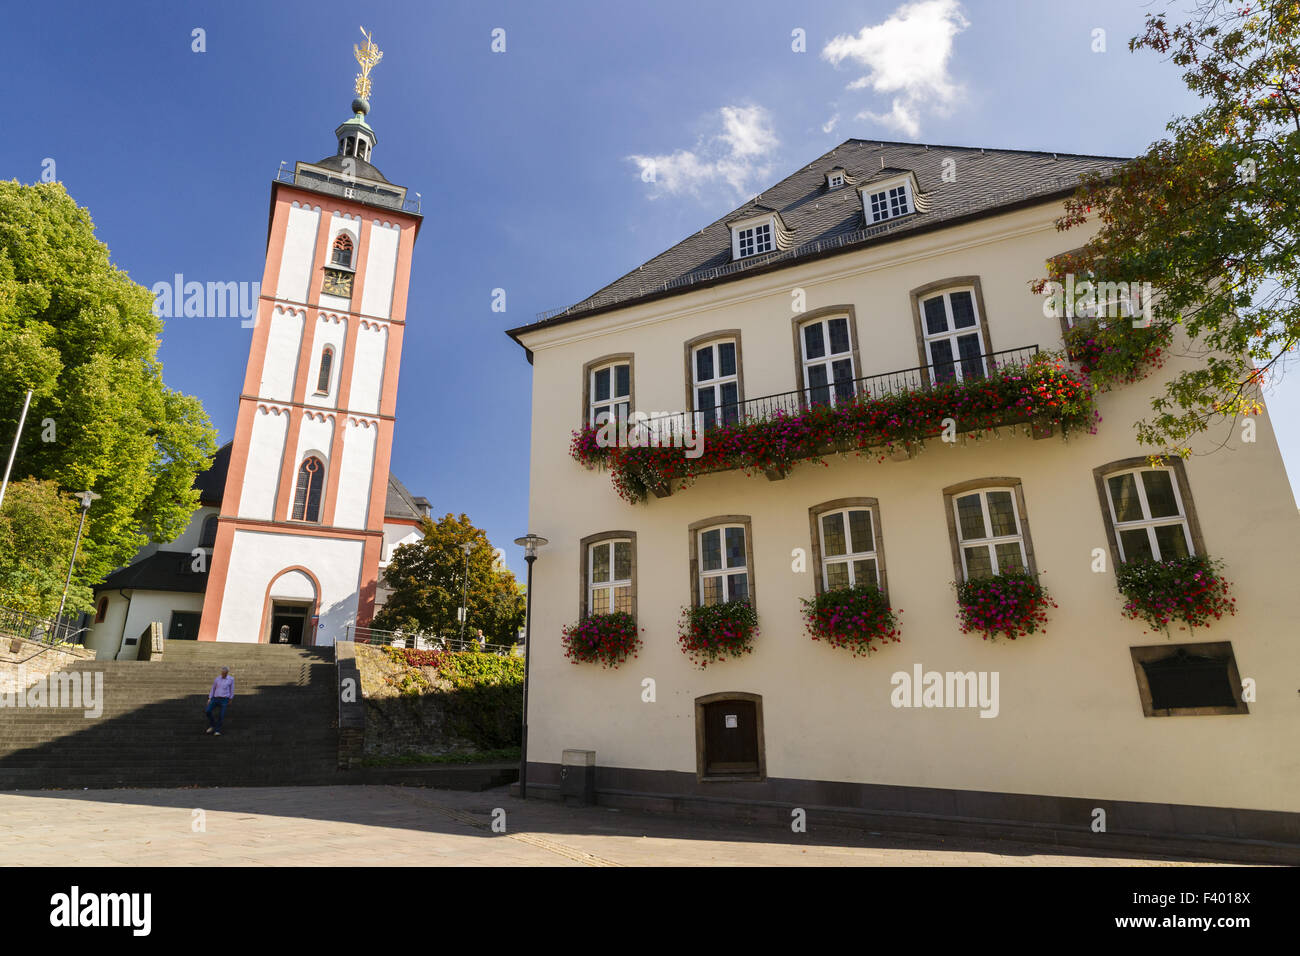 City Hall, Nikolai Church, Siegen, Germany - Stock Image